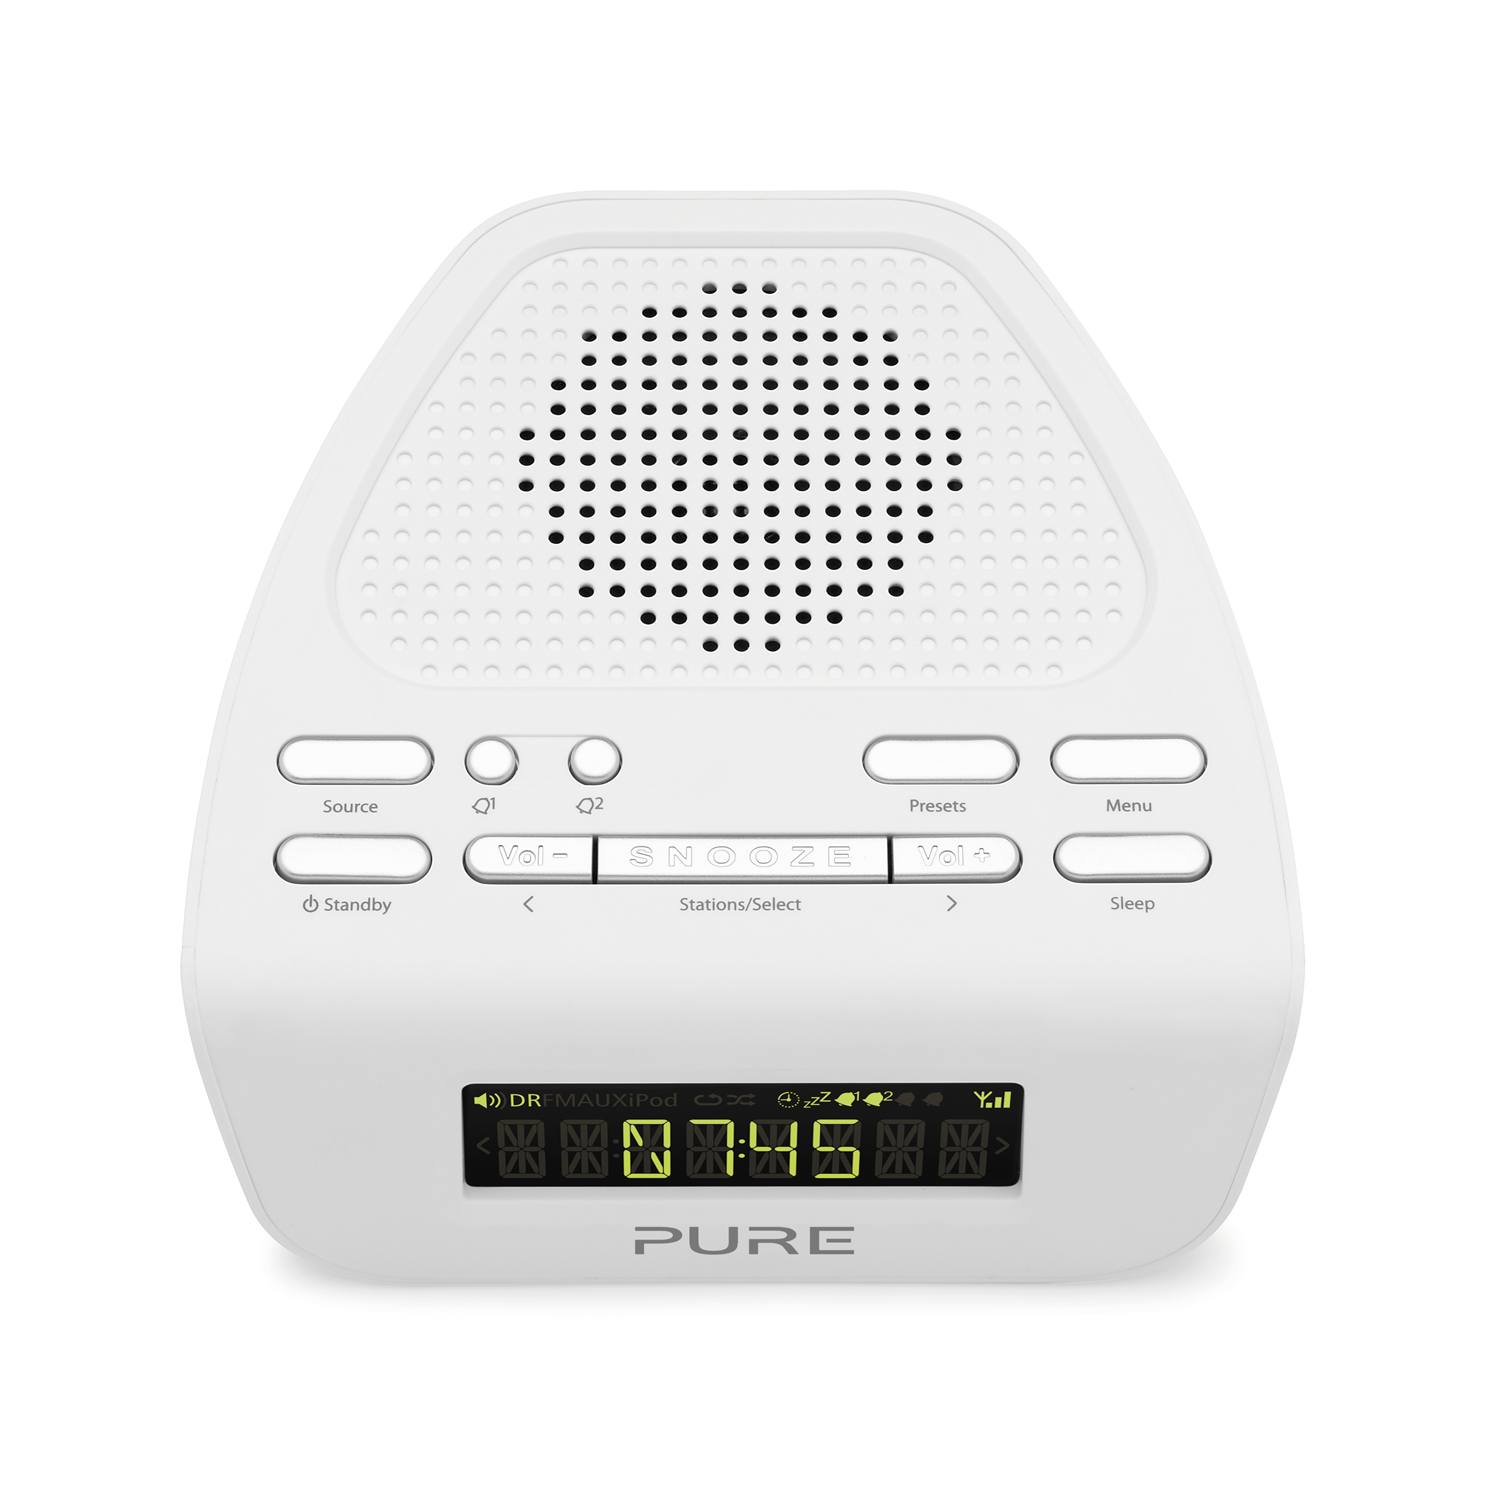 pure siesta mi series ii white lcd display duo alarm bedside digital fm radio ebay. Black Bedroom Furniture Sets. Home Design Ideas